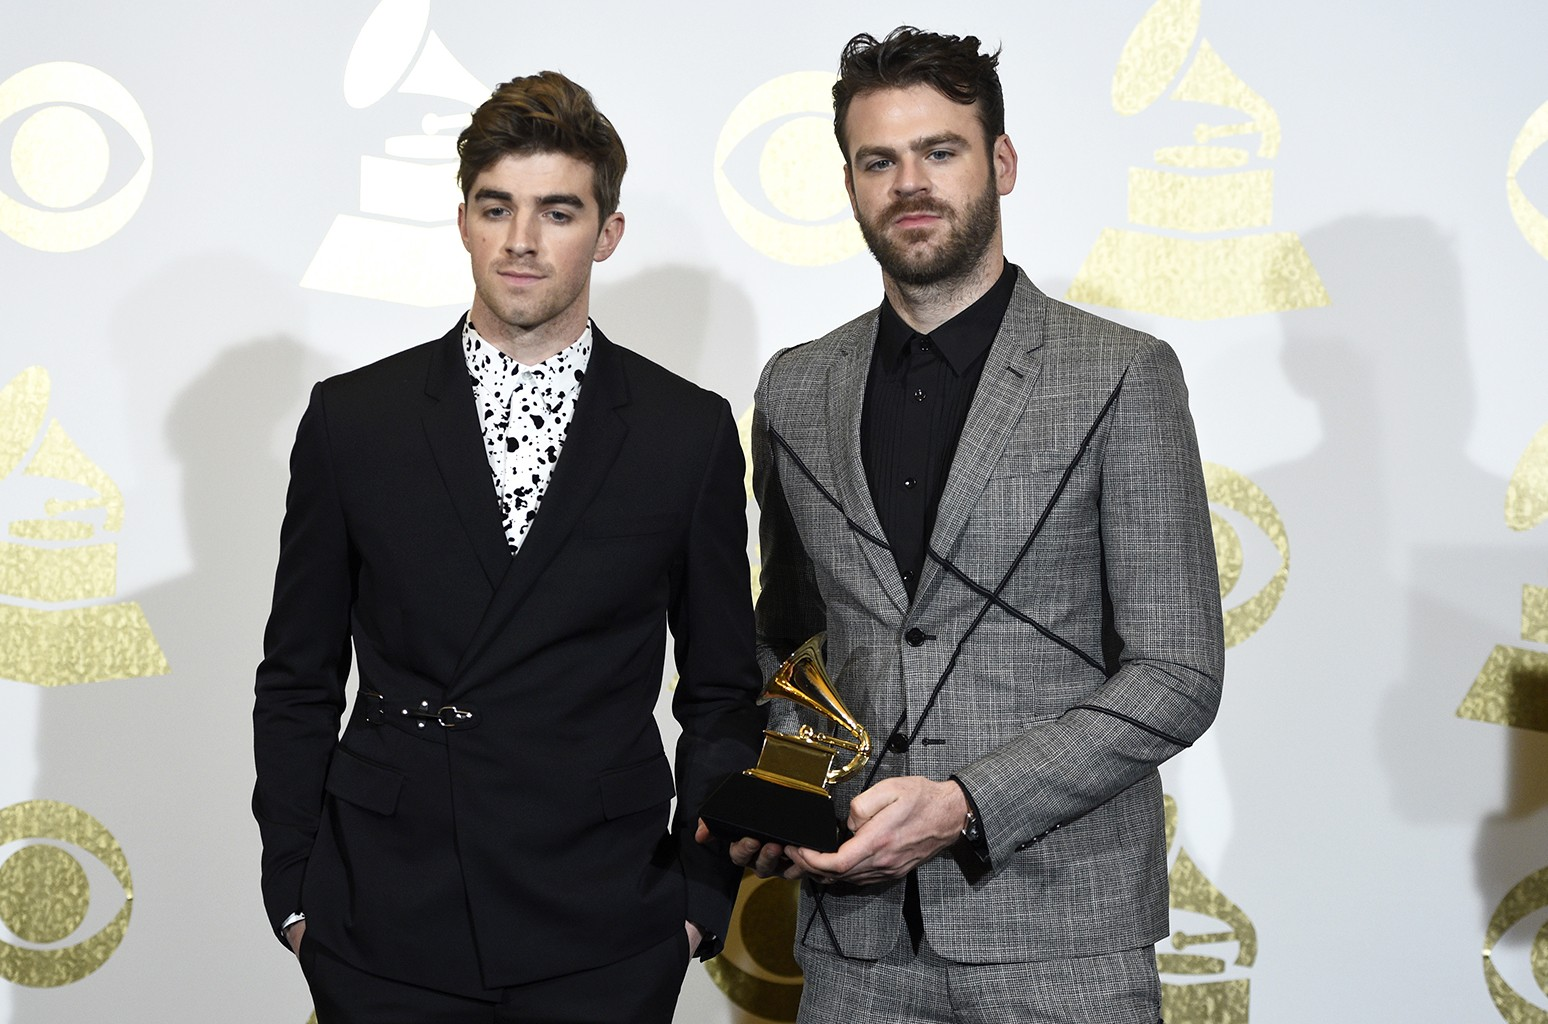 The Chainsmokers pose in the press room at the 59th annual Grammy Awards at the Staples Center on Feb. 12, 2017 in Los Angeles.